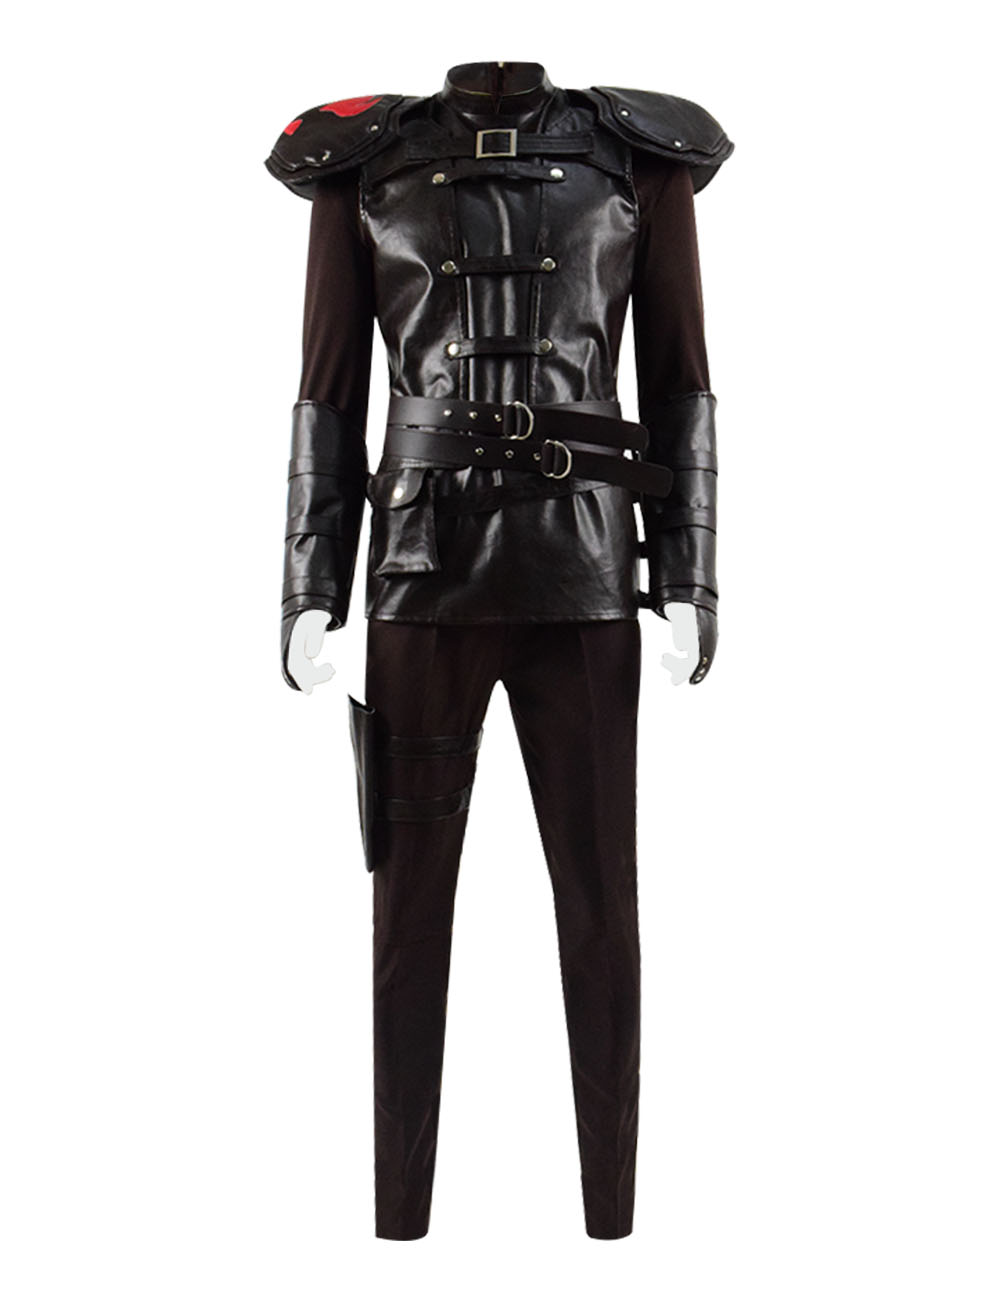 Hiccup Cosplay Costume Outfit Halloween Party Costume Full Set